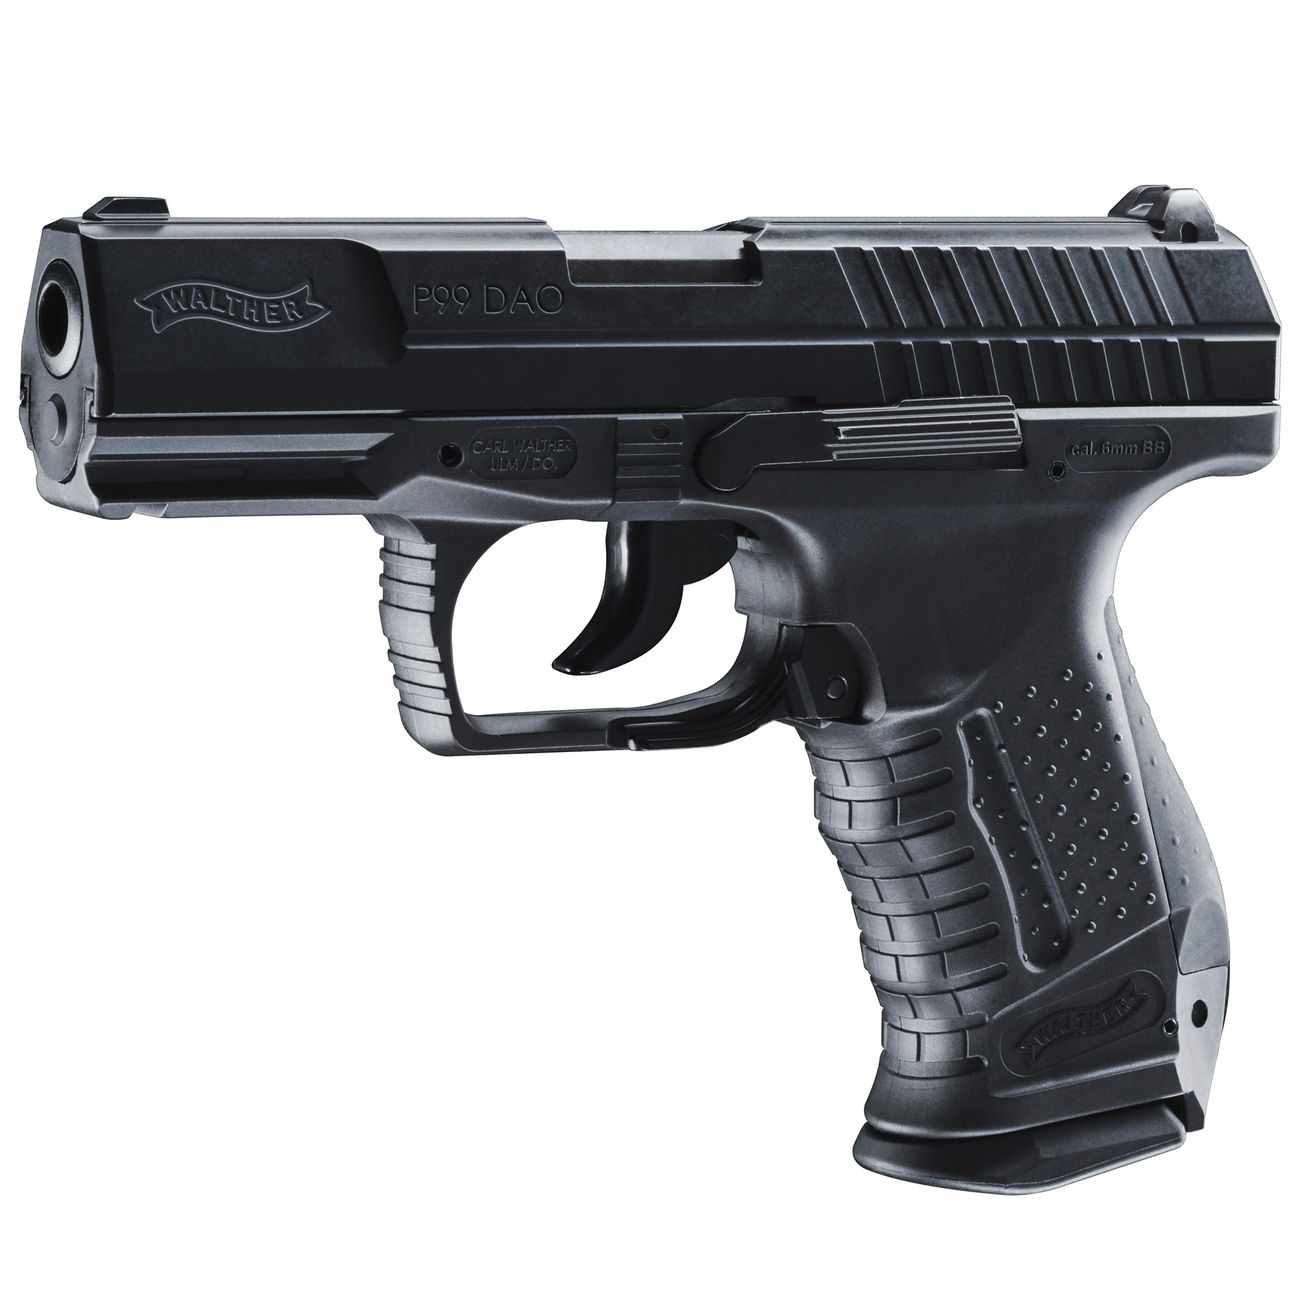 Walther P99 DAO 6 mm BB Blowback CO2 Softair 2